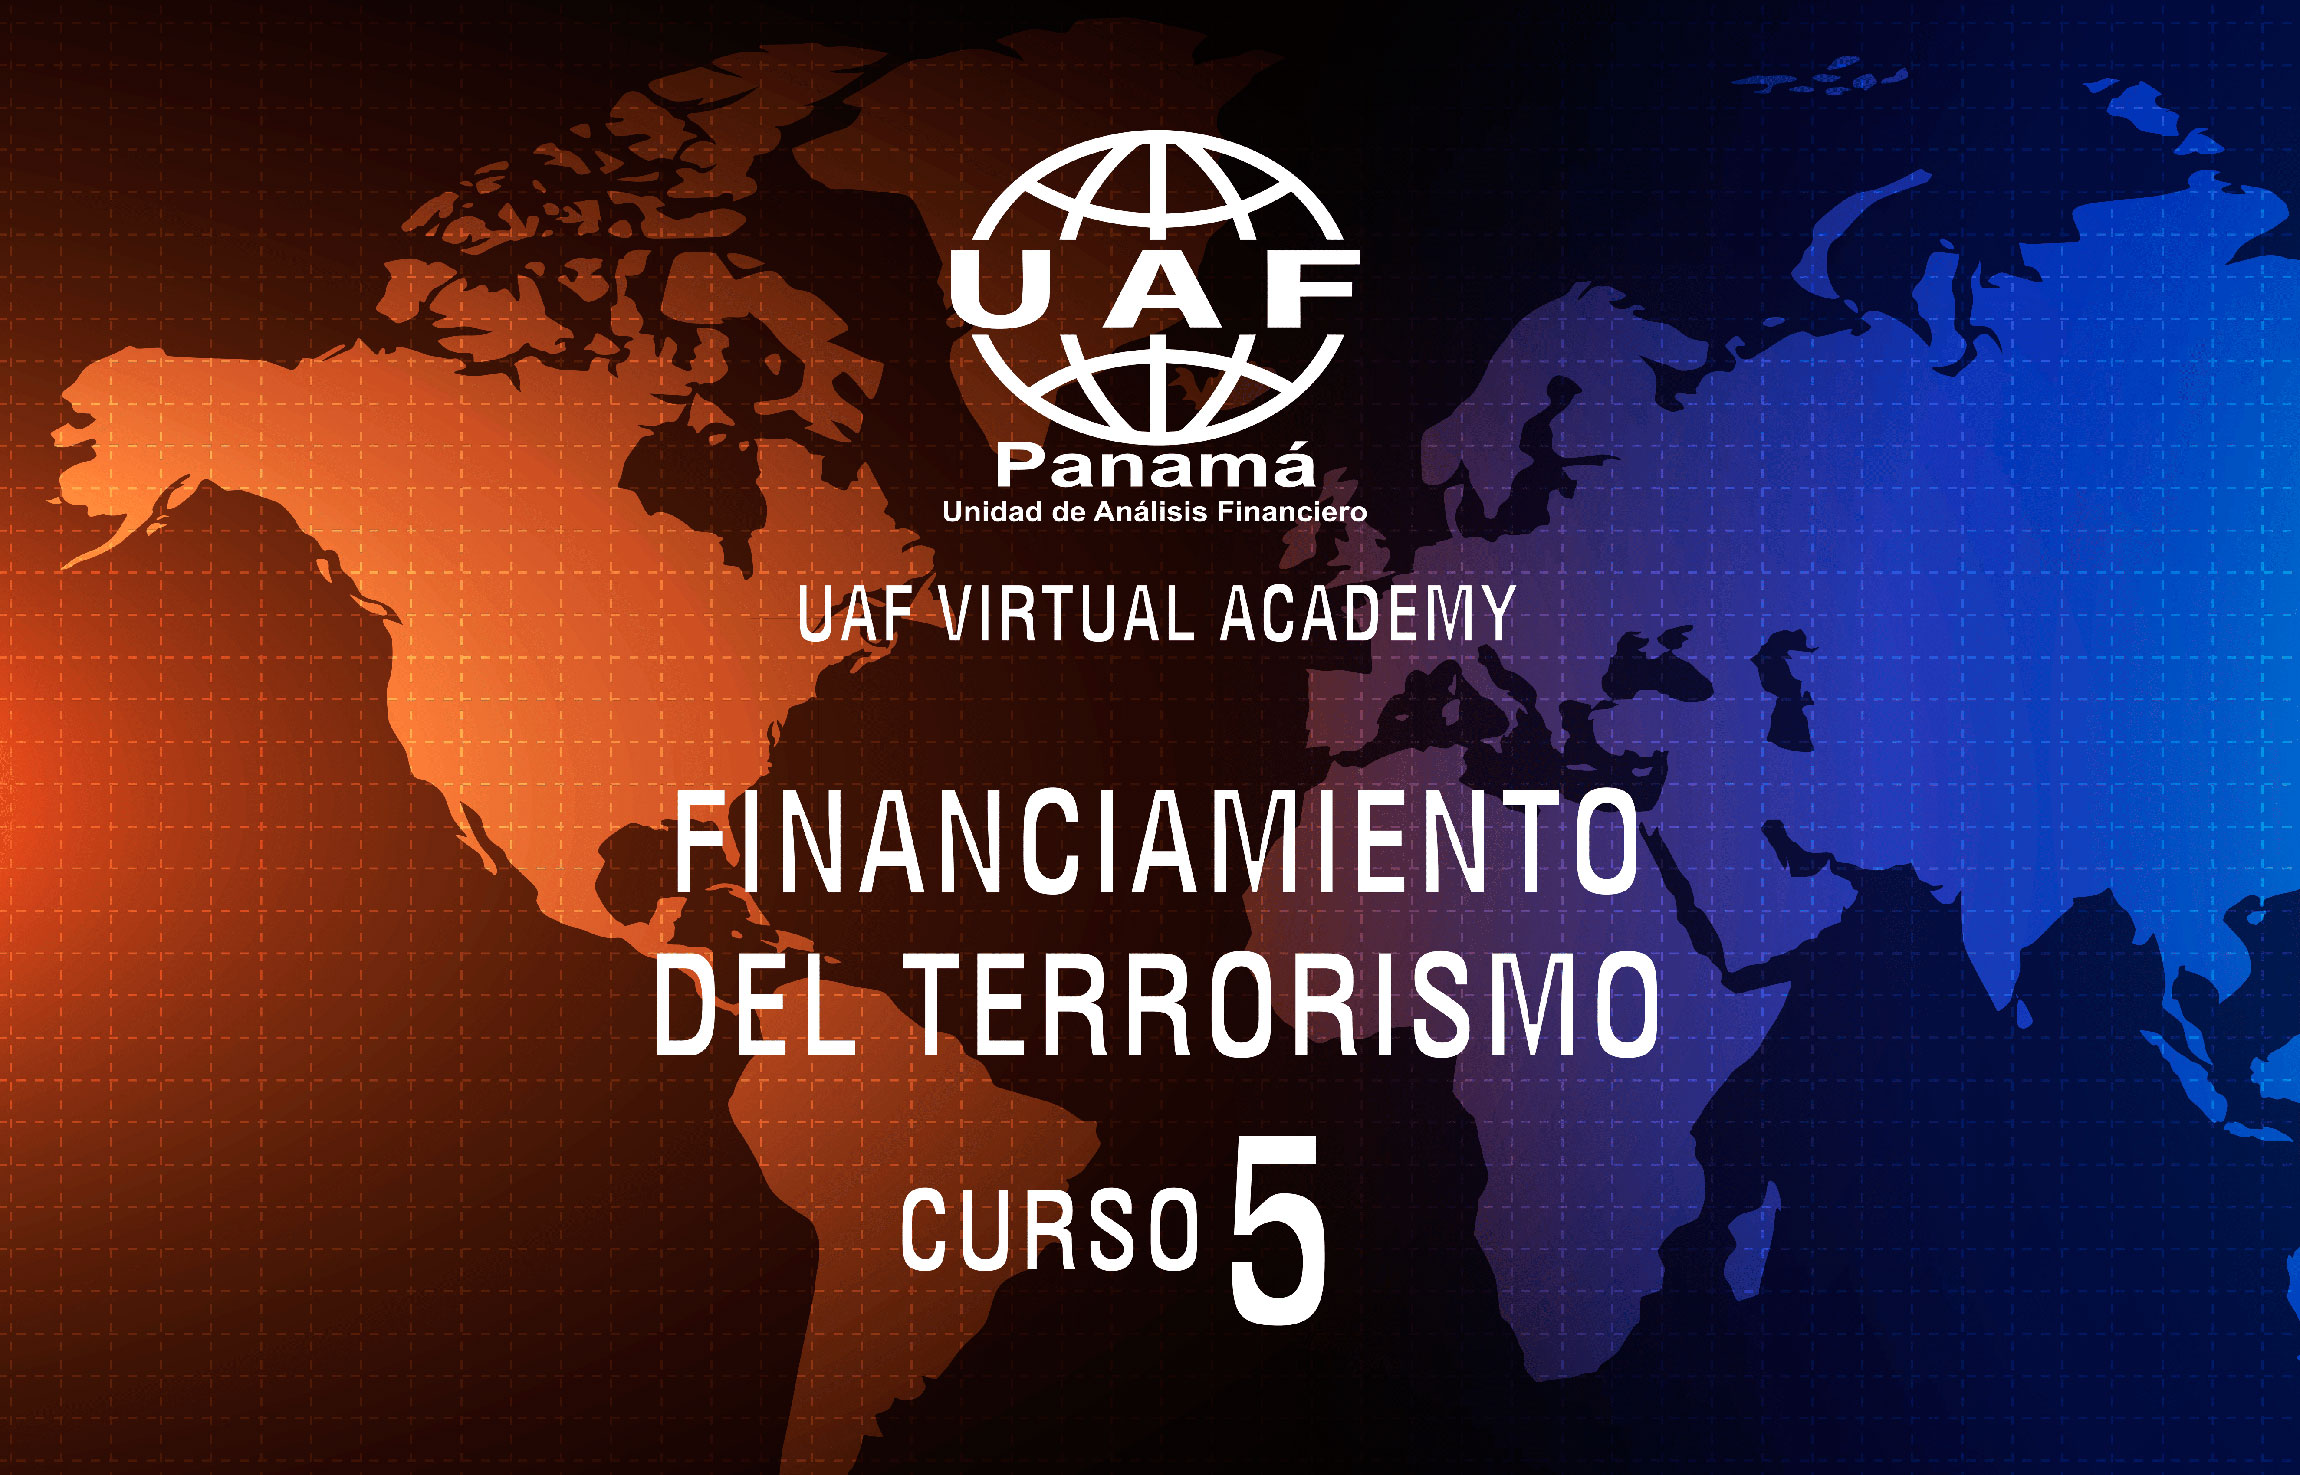 Course Image Financiamiento de Terrorismo